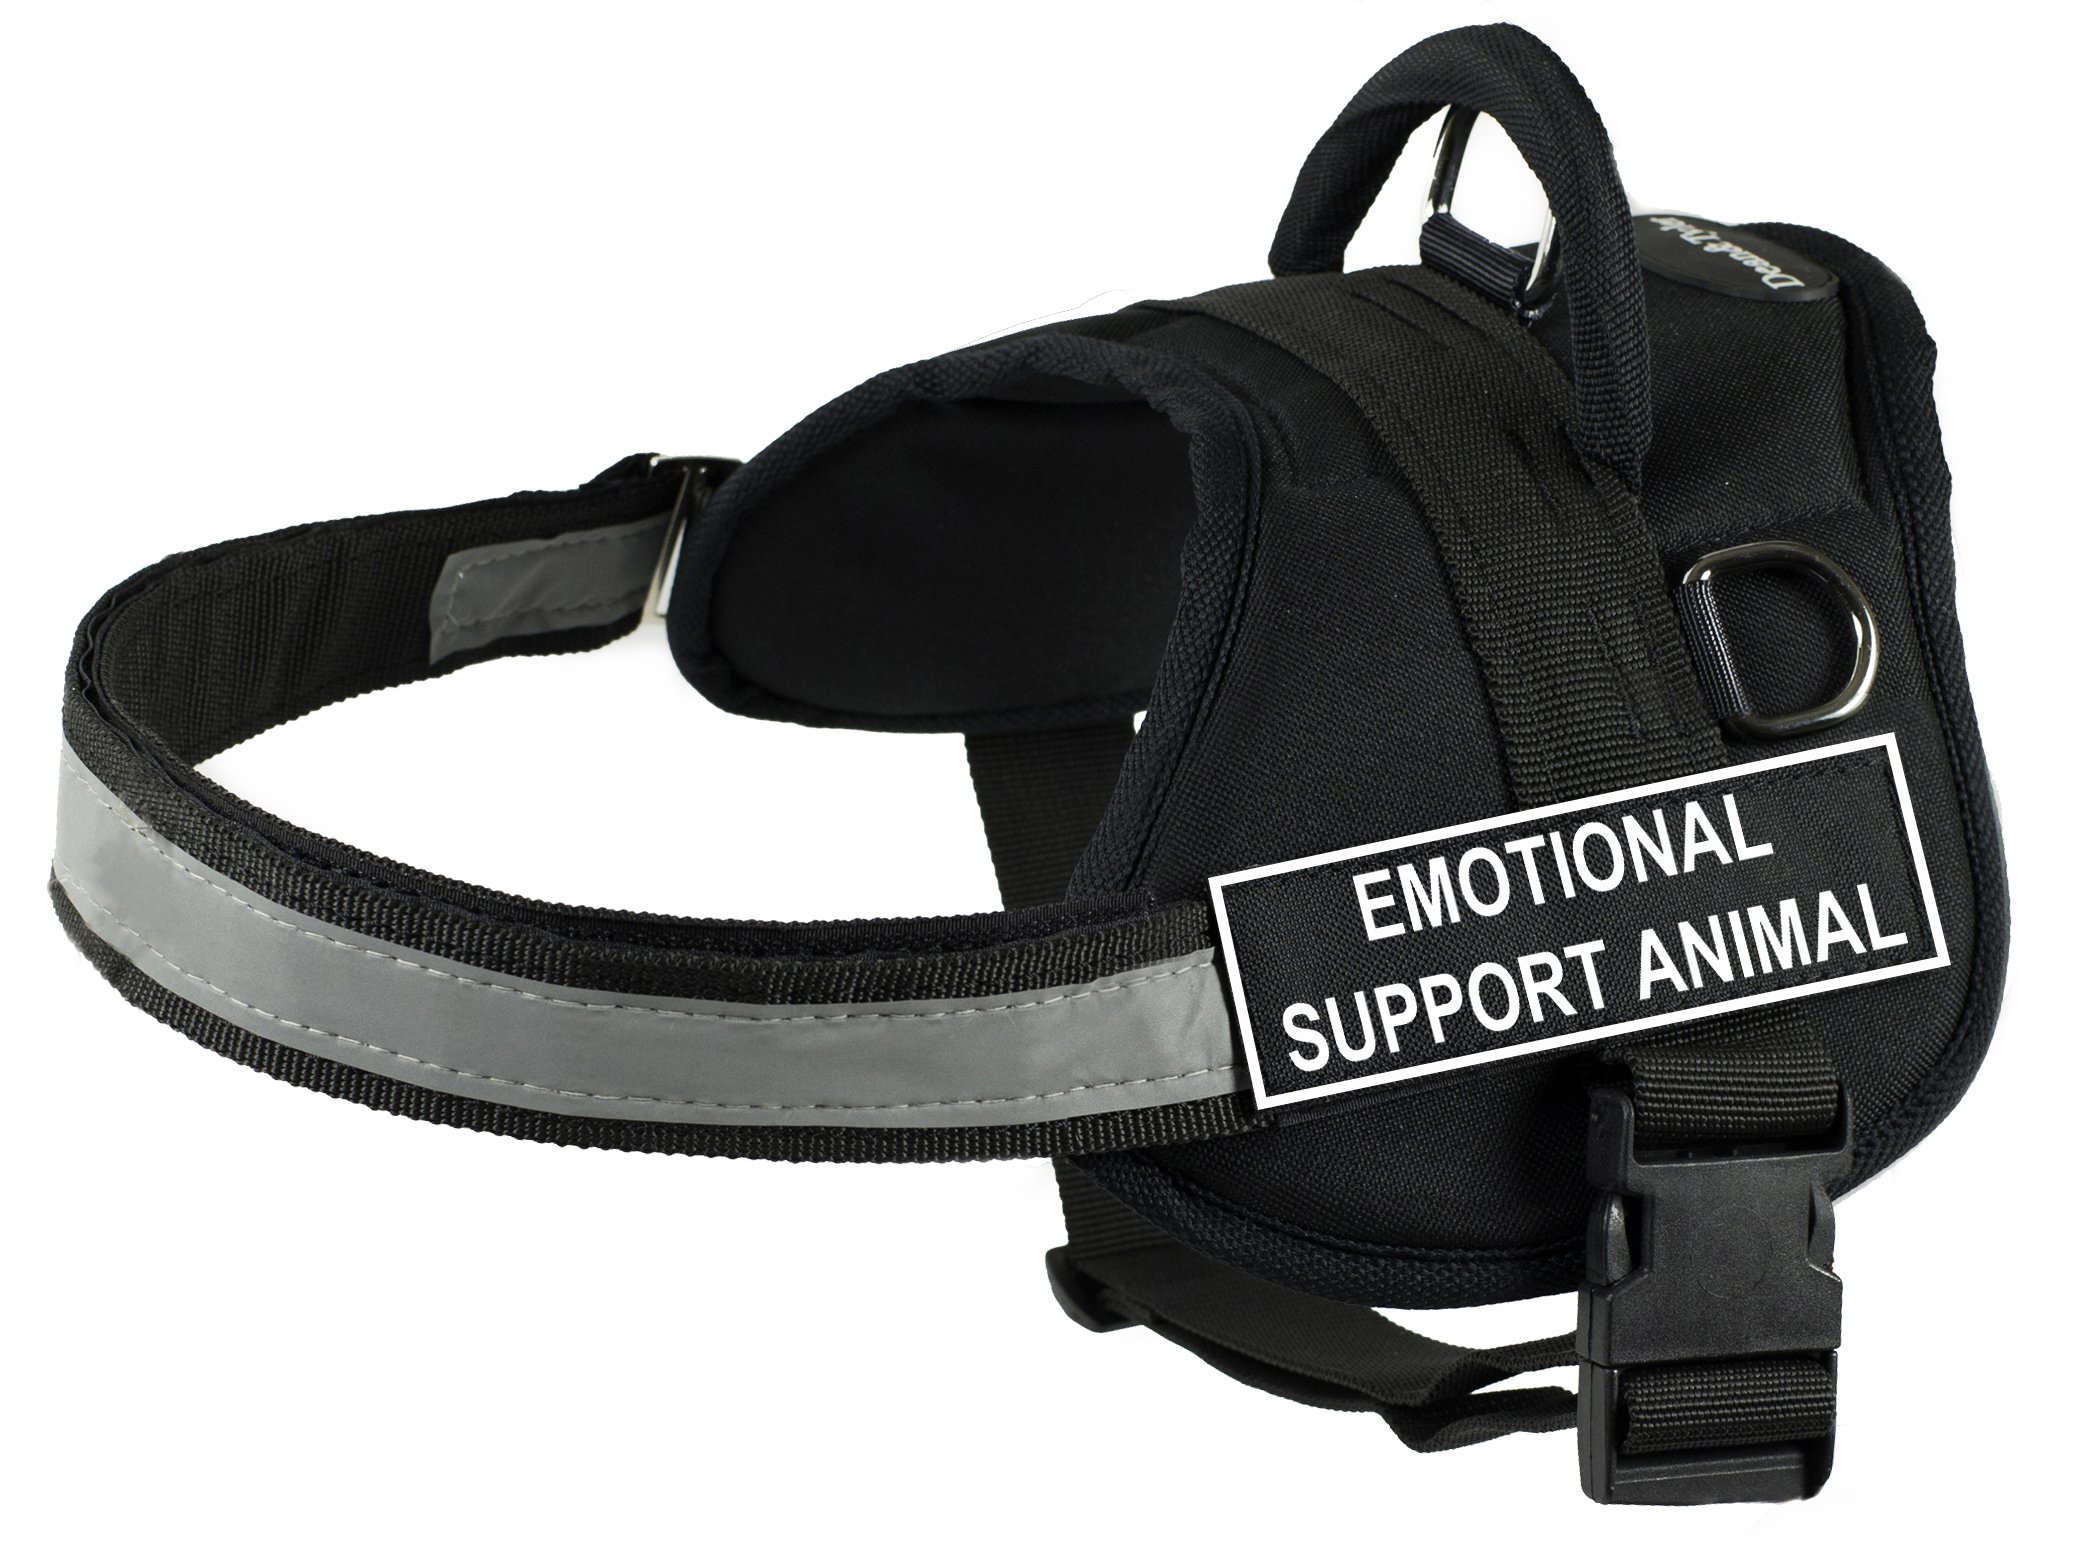 Dean & Tyler Harness Emotional Support Animal, XX-Small, Fits Girth Size: 18 to 21-Inch, Black/White